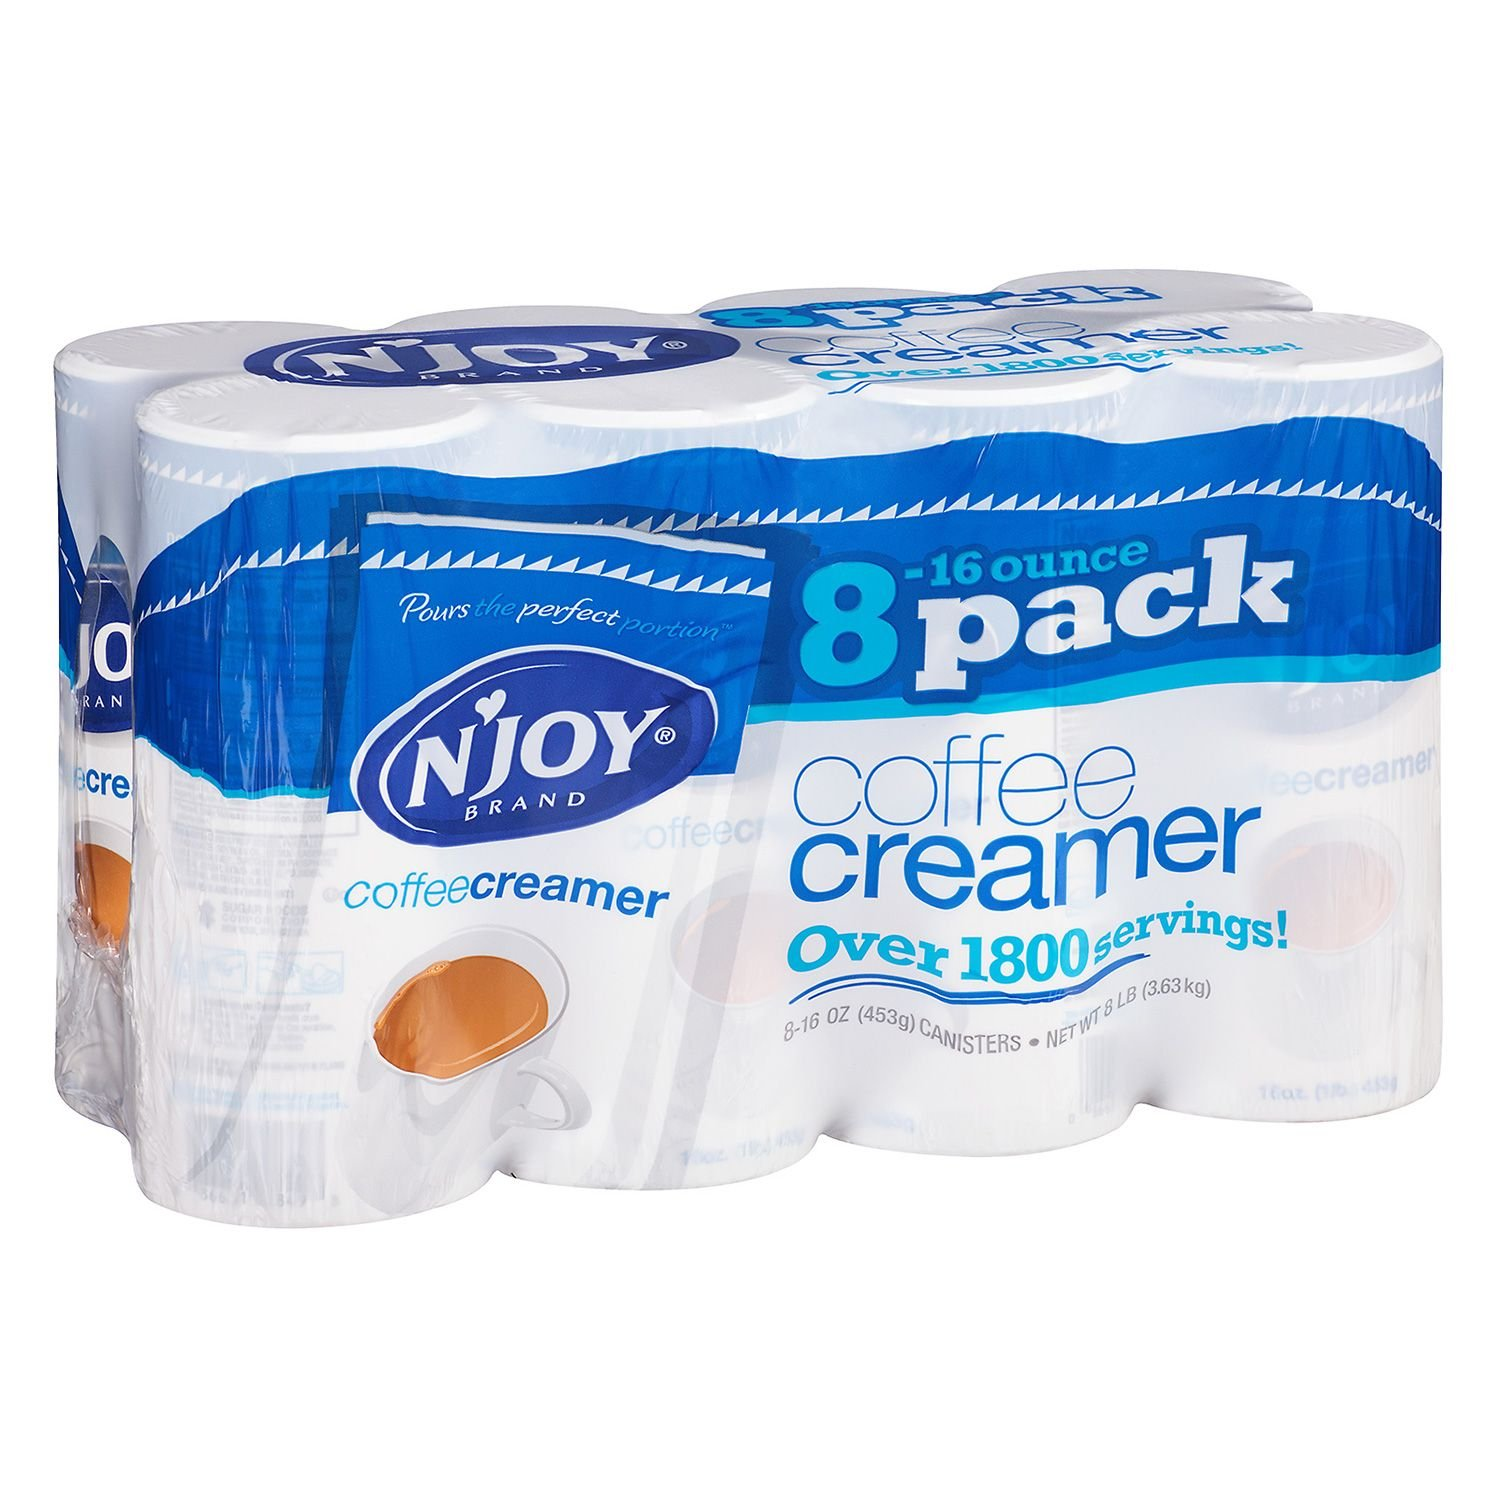 N'Joy Coffee Creamer (16 oz., 8 pk.) pack 3 by N'Joy